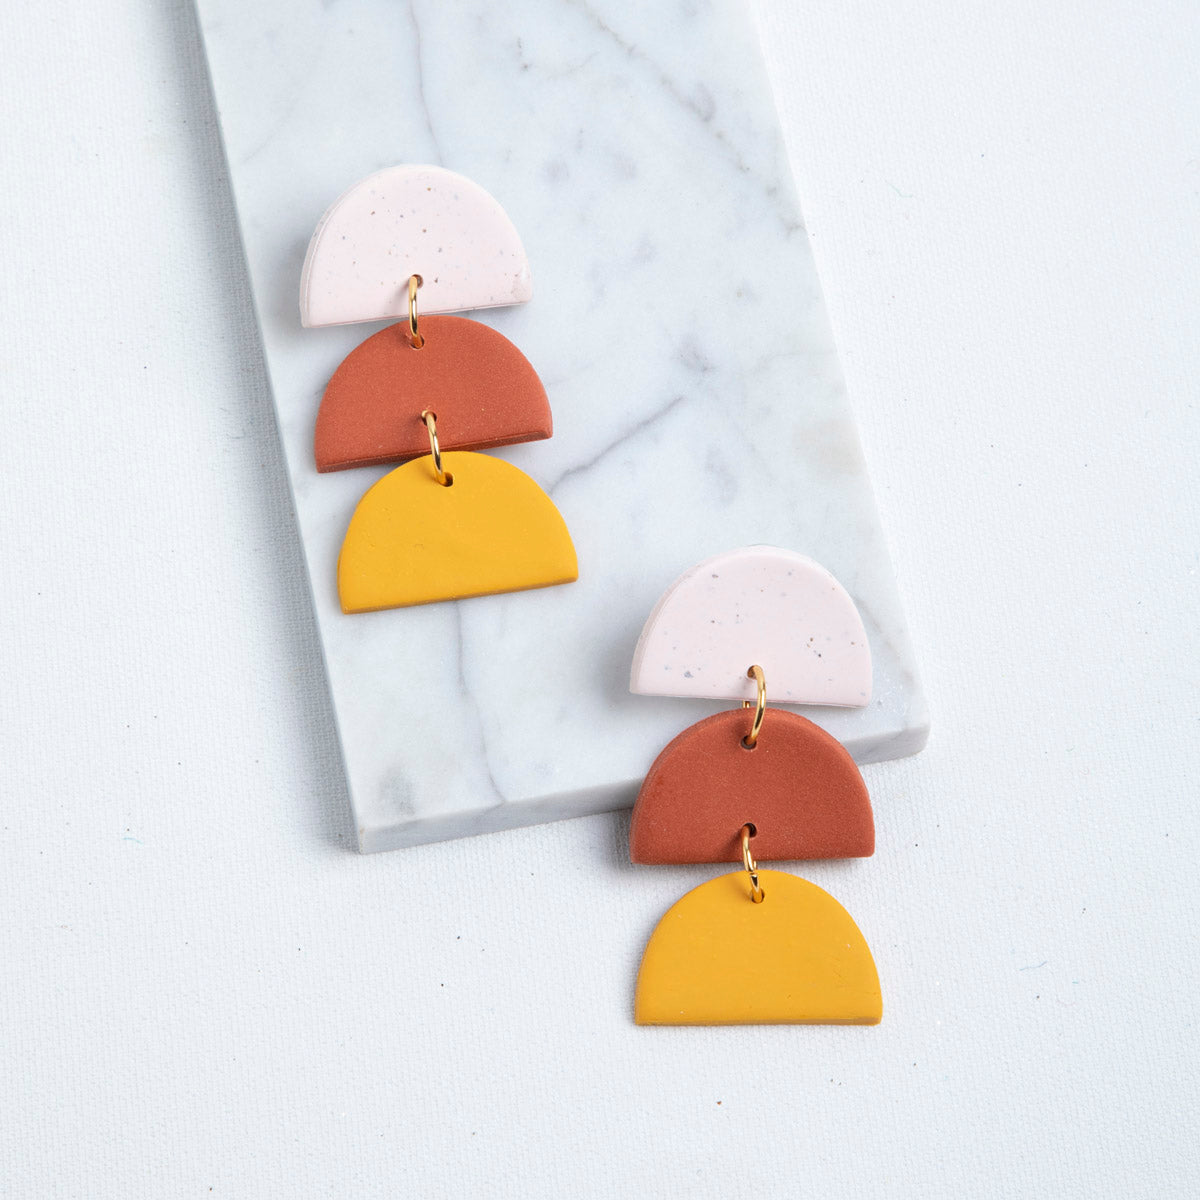 Sunset Tiered Polymer Clay Earrings available at Picnic SF